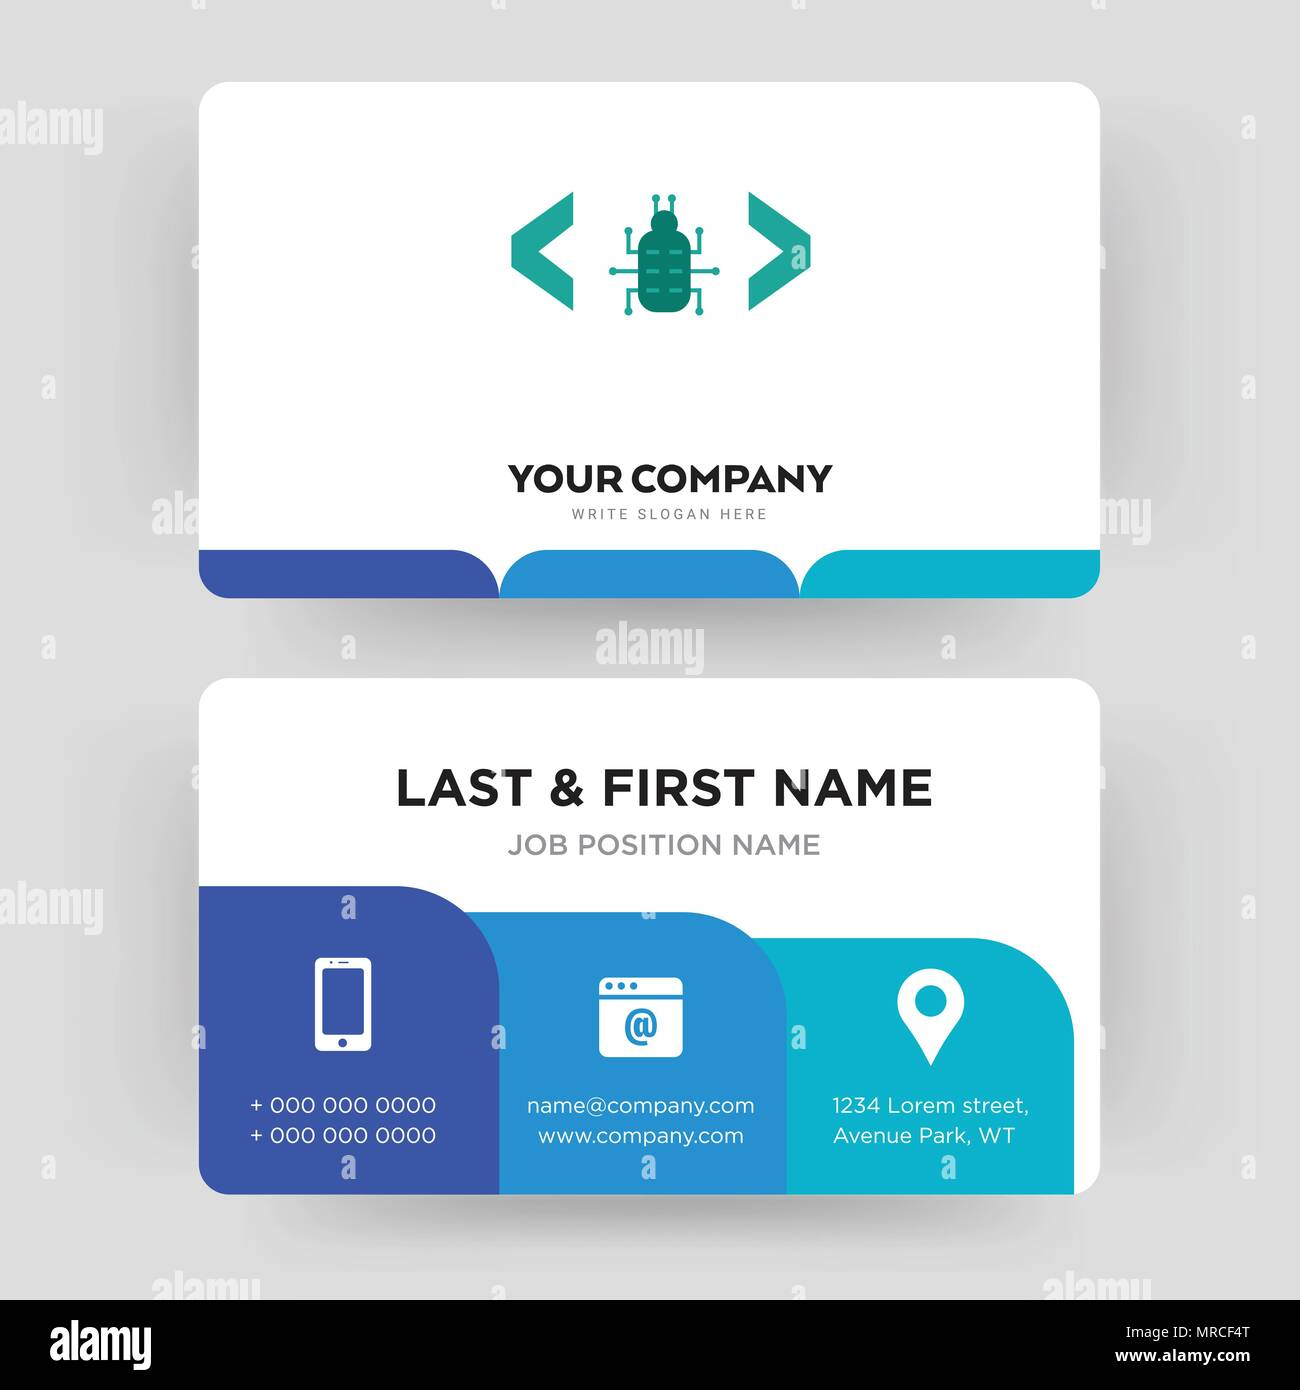 Software Bug Business Card Design Template Visiting For Your Company Modern Creative And Clean Identity Card Vector Stock Vector Image Art Alamy